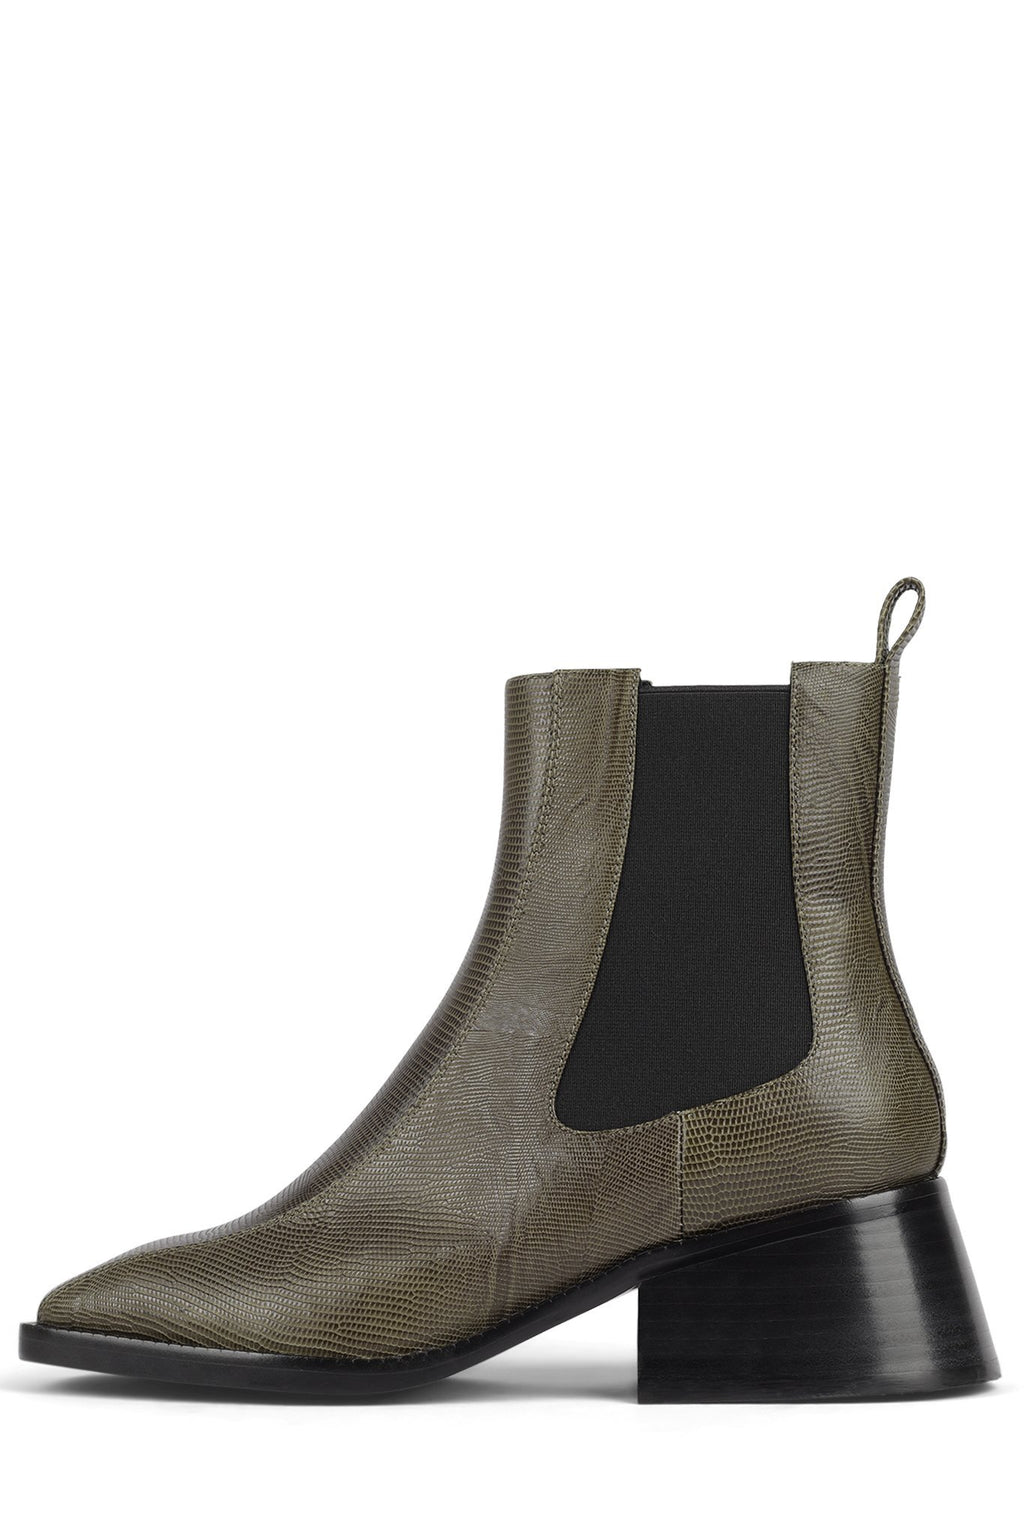 LLIAM Heeled Boot DV Khaki Lizard 6